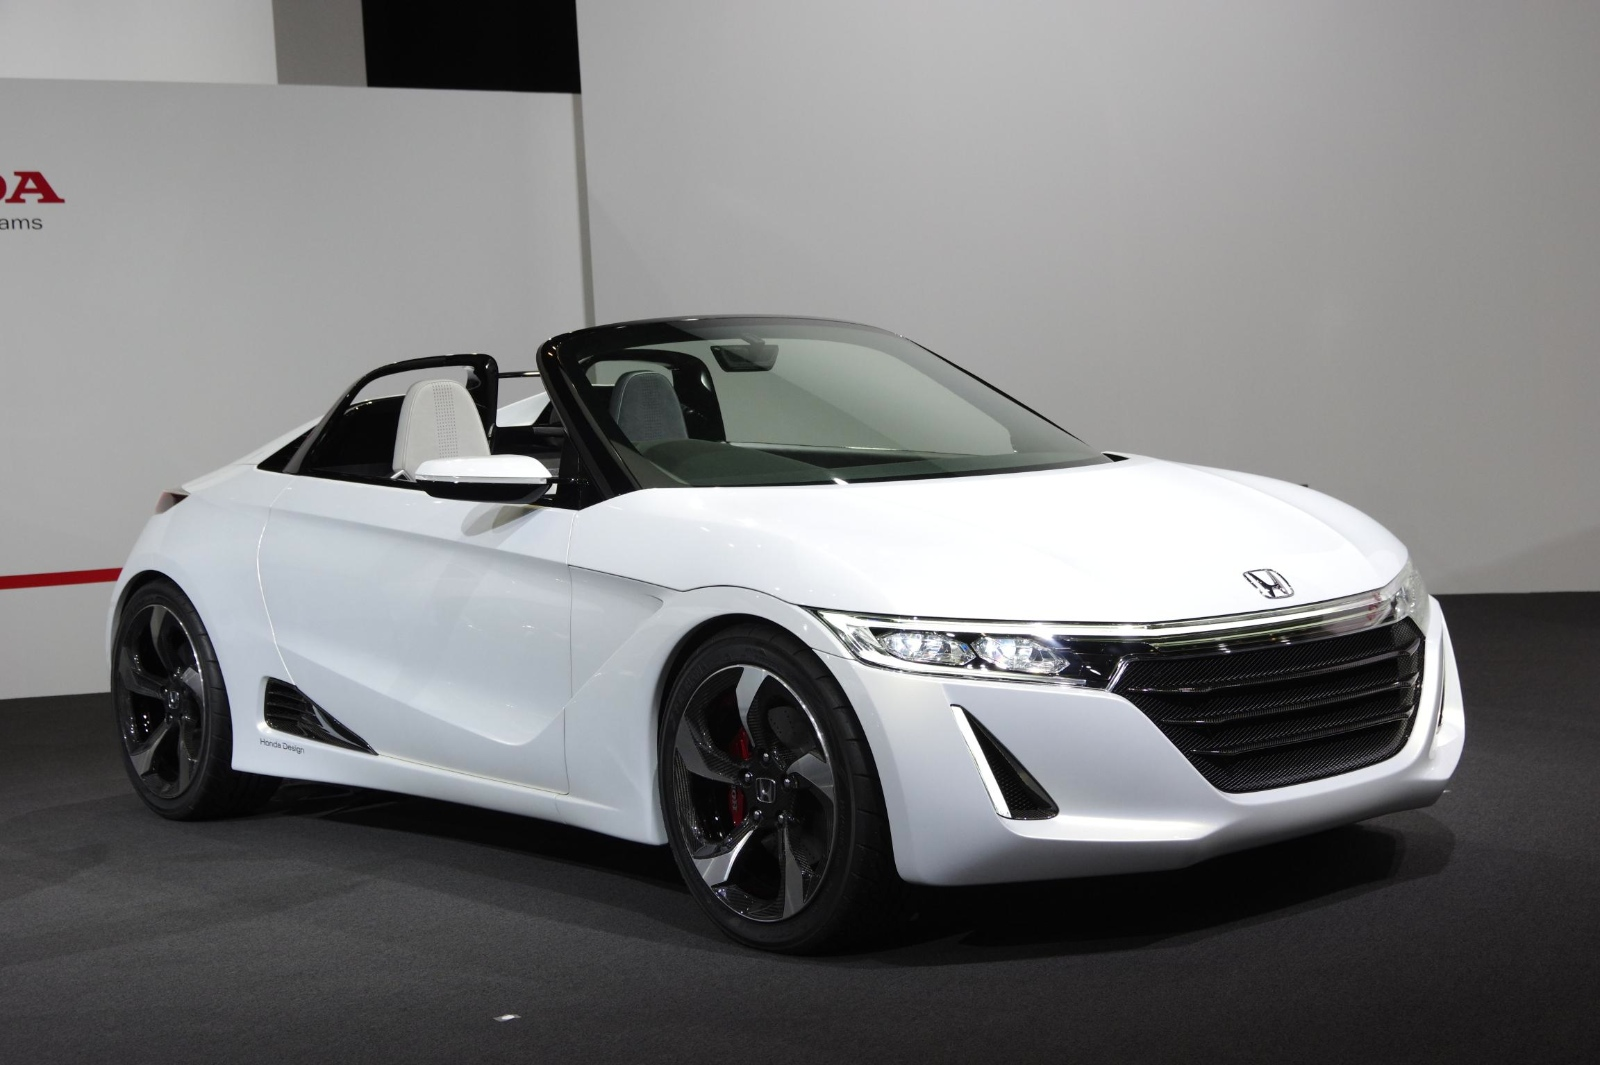 Shrunken NSX: Honda S660 Kei Sportscar Coming In 2015